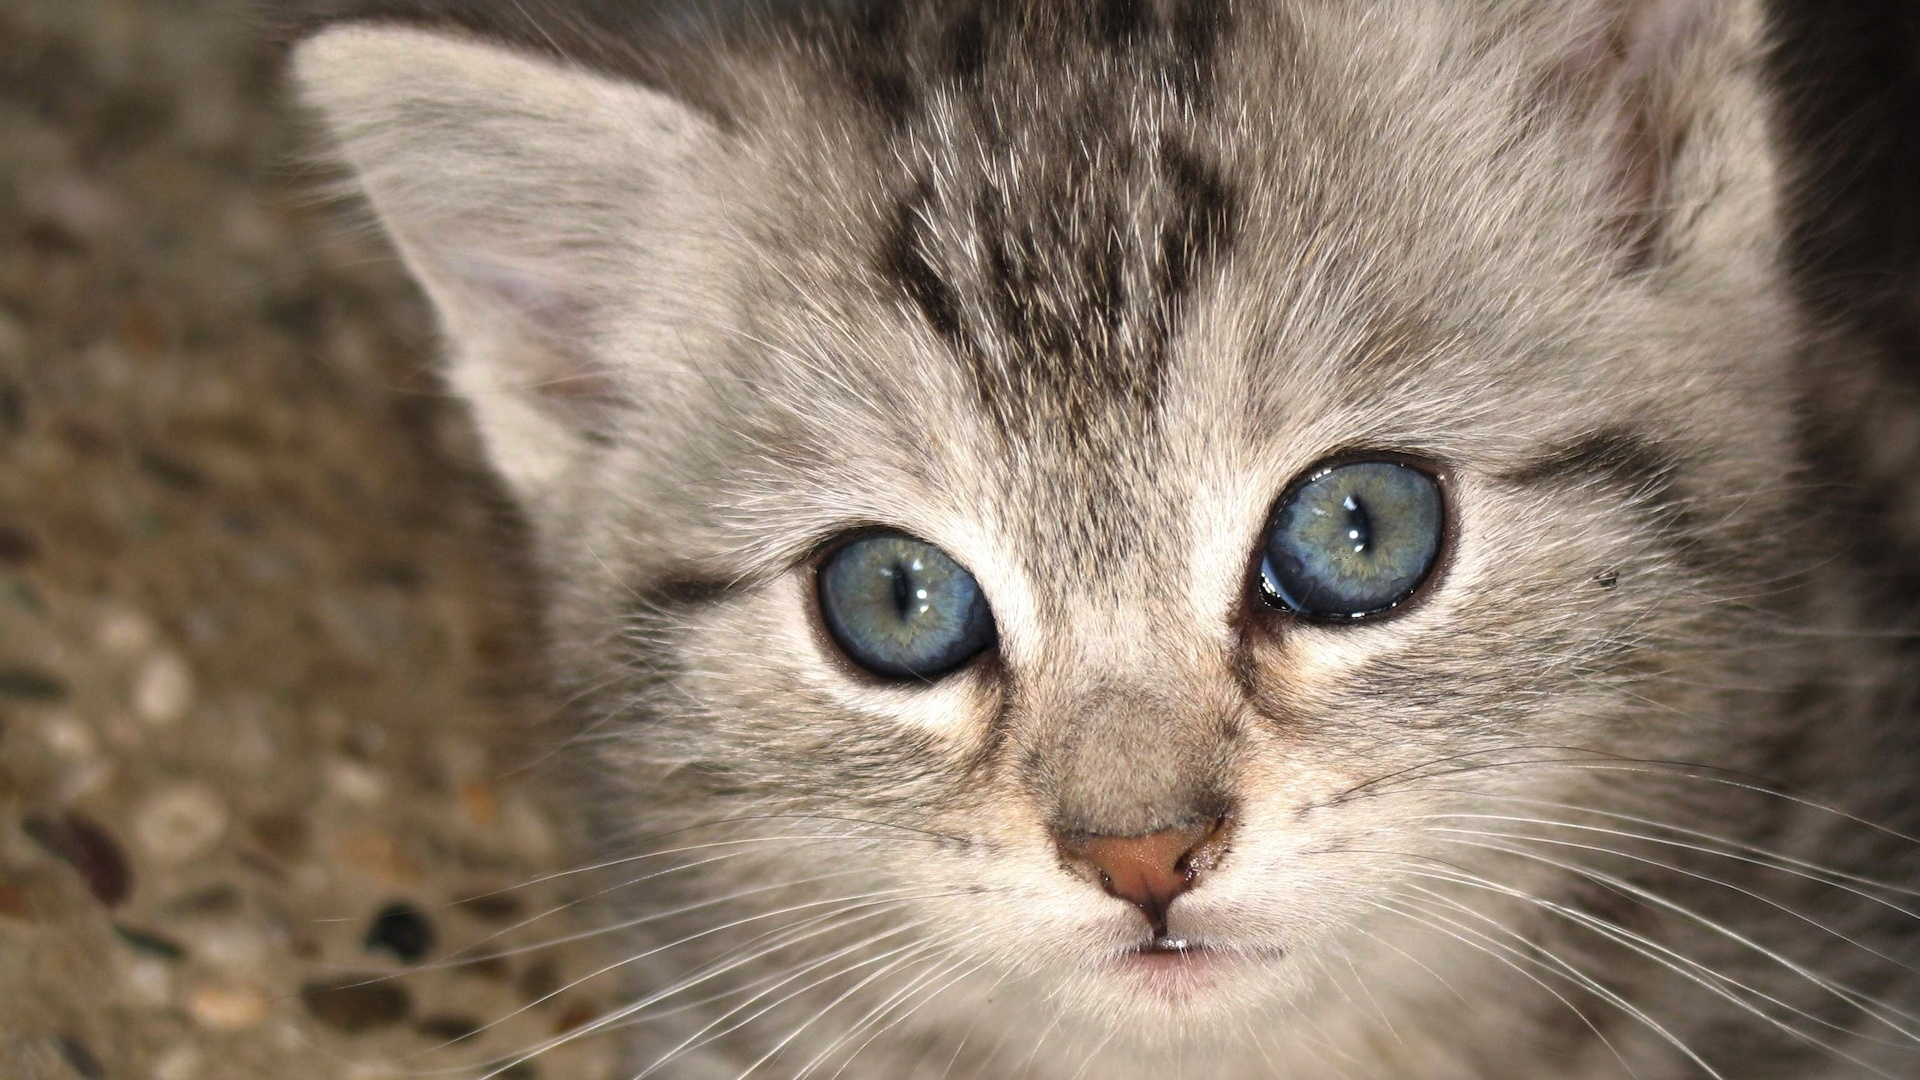 Kitten With Blue Eyes Wallpapers And Images Kitten With Grey Eyes 1397418 Hd Wallpaper Backgrounds Download